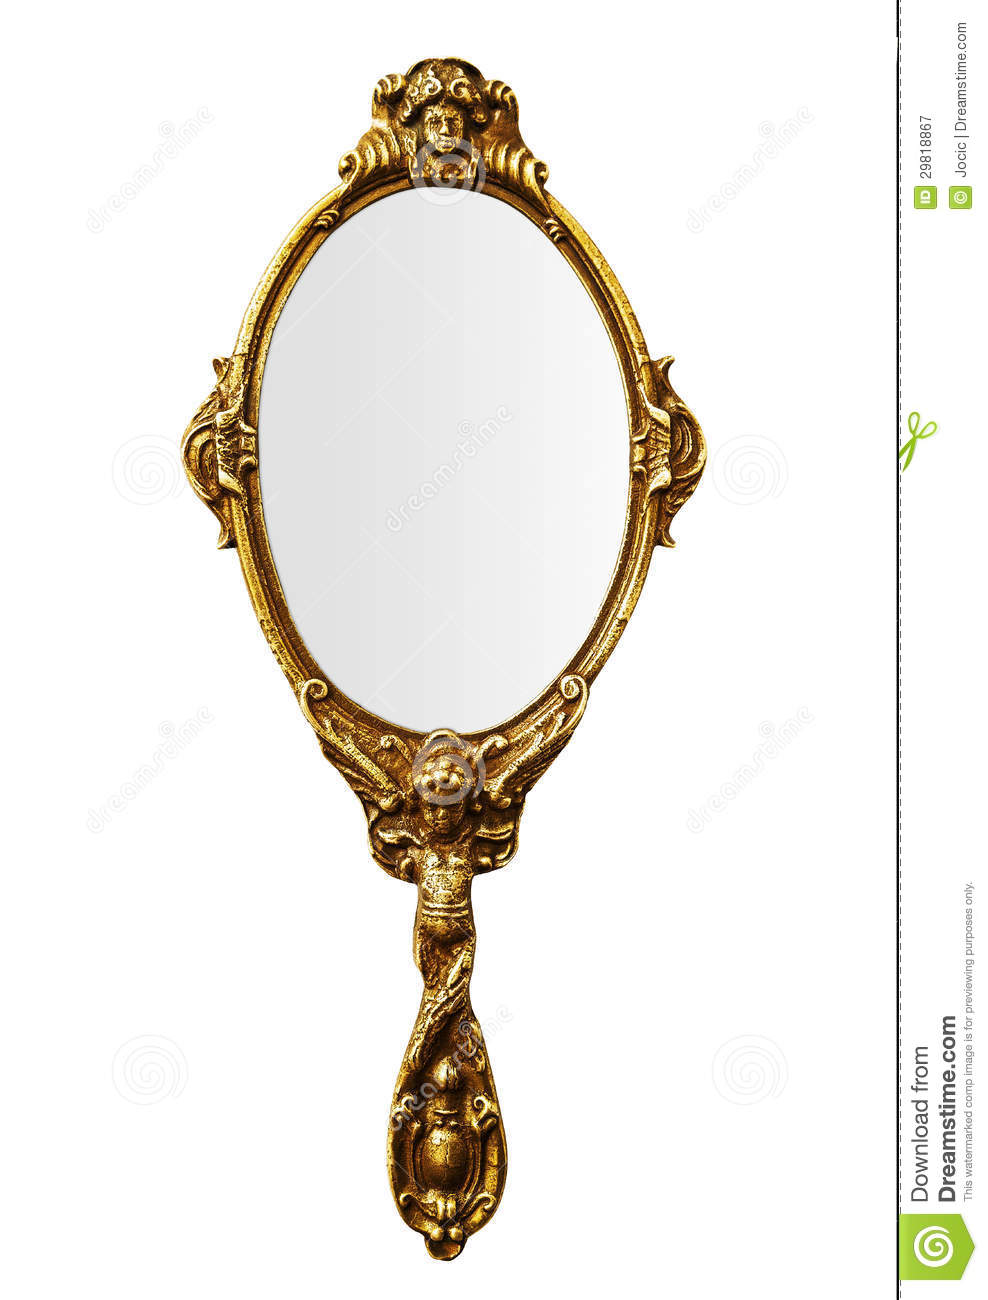 Hand Mirror Clipart - Clipart Suggest Vintage Hand Mirror Clipart